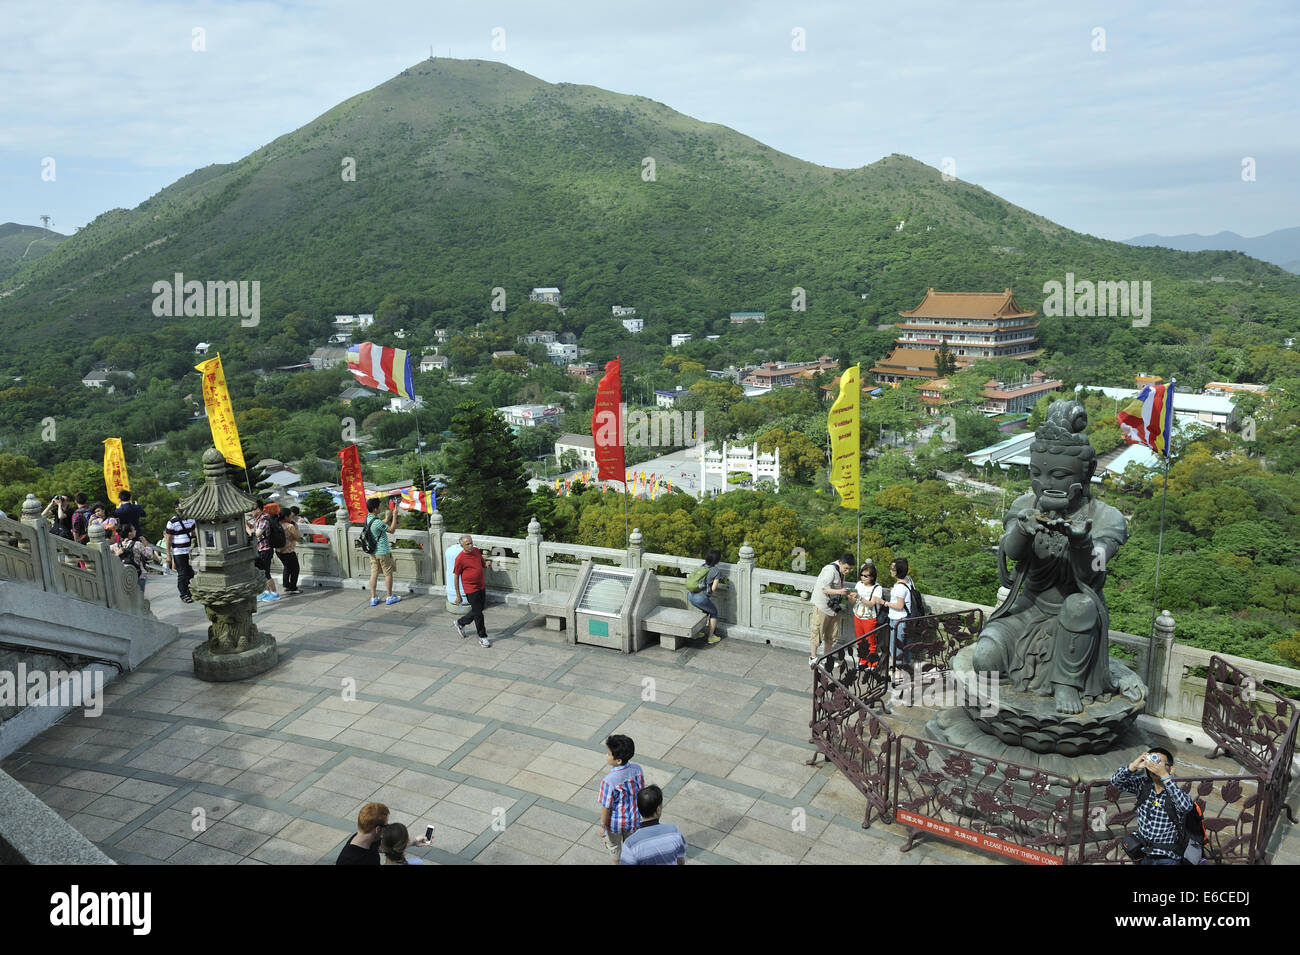 Two of the six Divas known as 'The offering of the six Divas'; bronze statues at the Tian Tan Buddha, Lantau - Stock Image